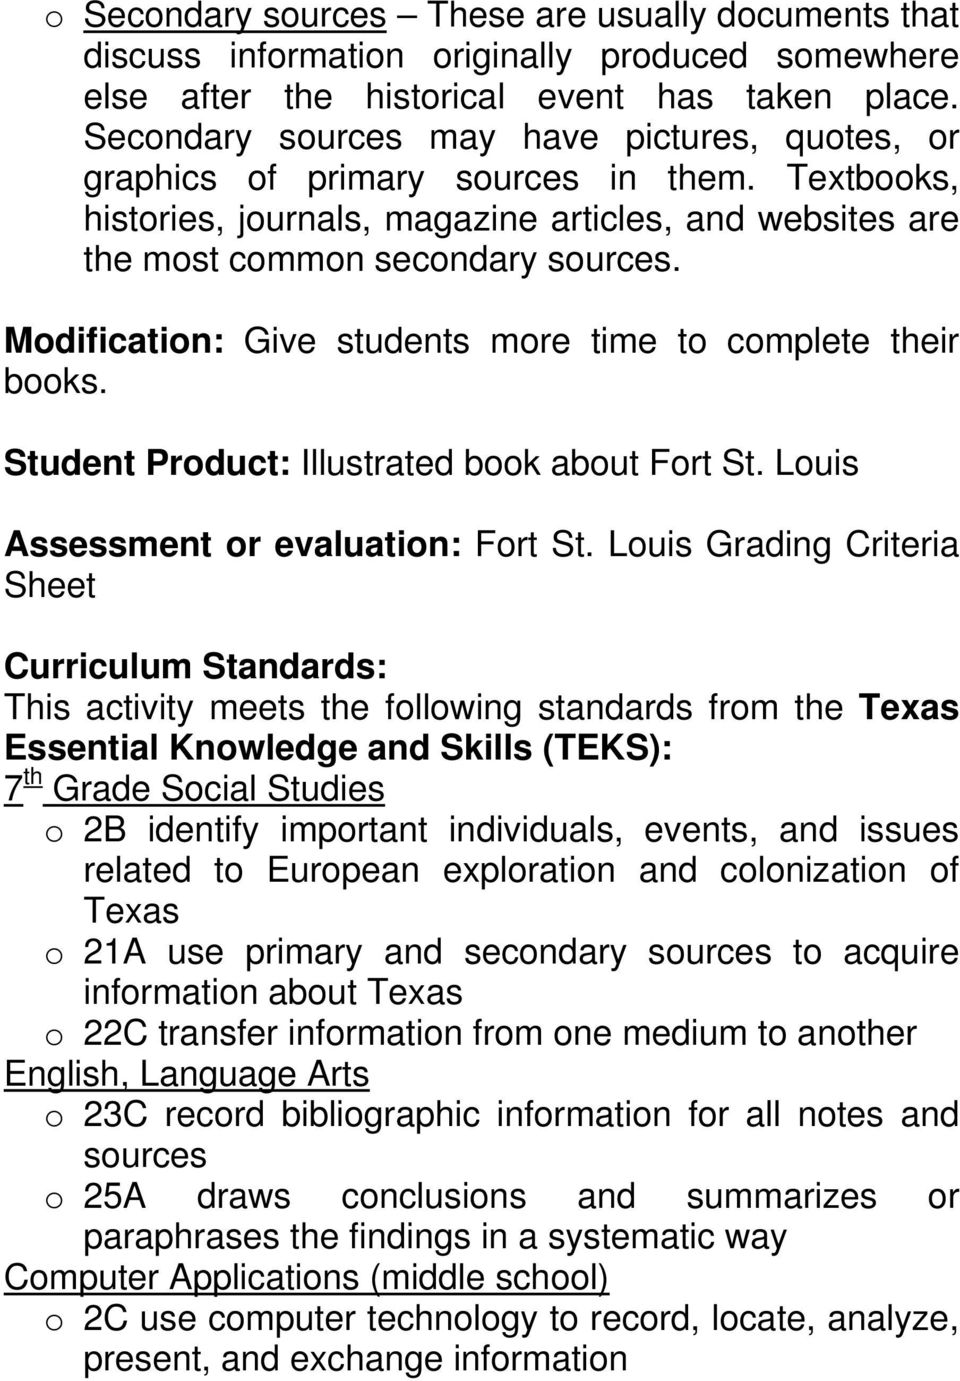 Modification: Give students more time to complete their books. Student Product: Illustrated book about Fort St. Louis Assessment or evaluation: Fort St.